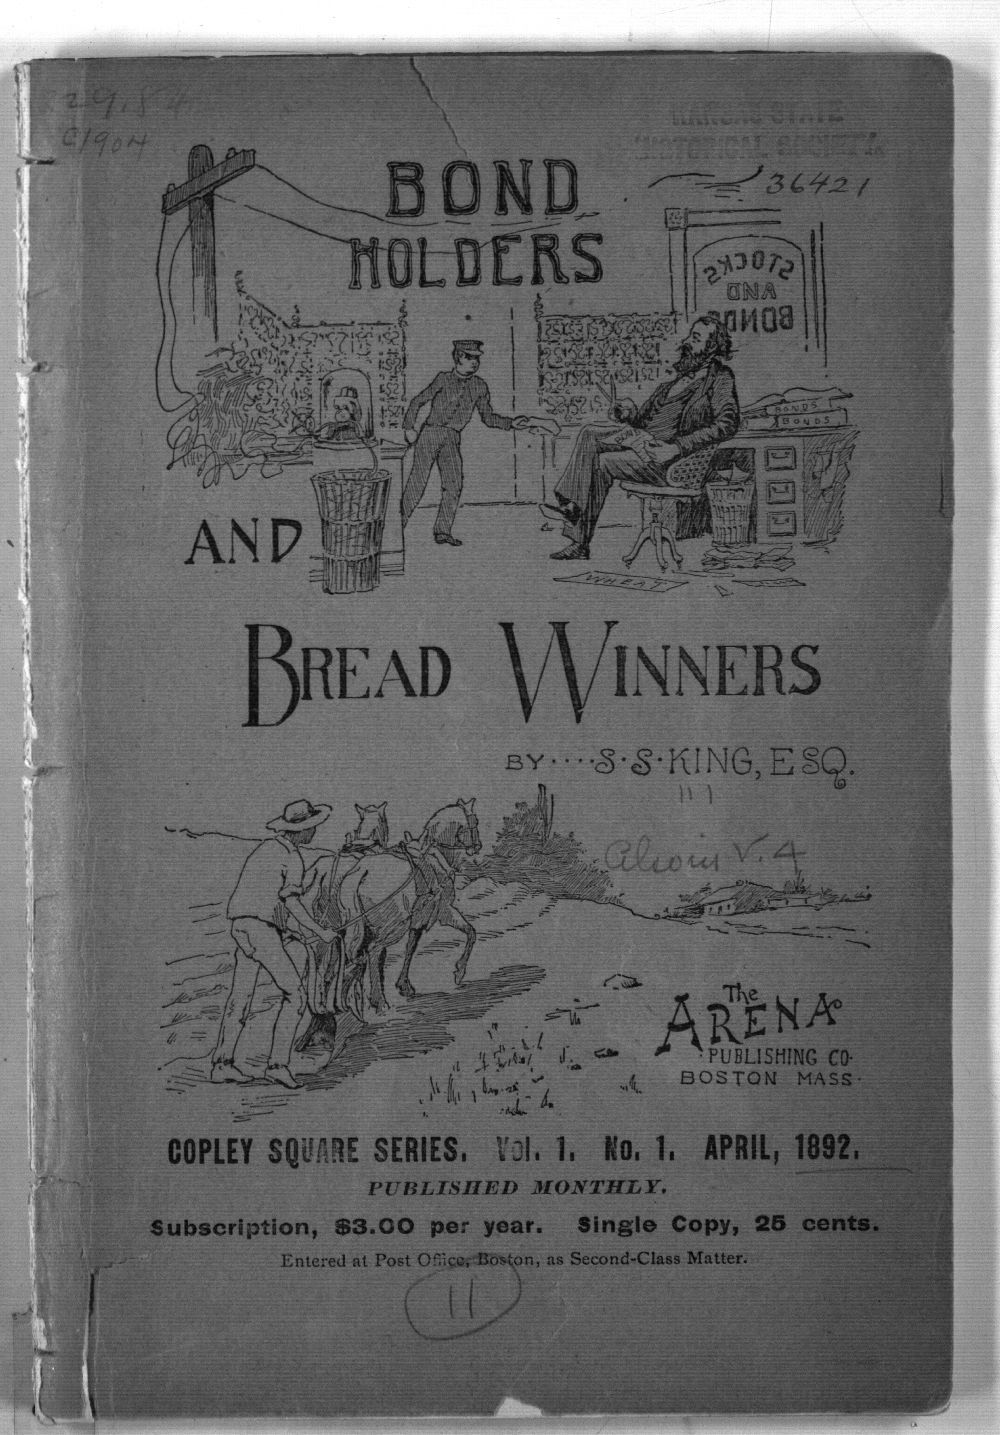 Bond Holders and Bread Winners: A Portrayal of Some Political Crimes Committed in the Name of Liberty - Front Cover